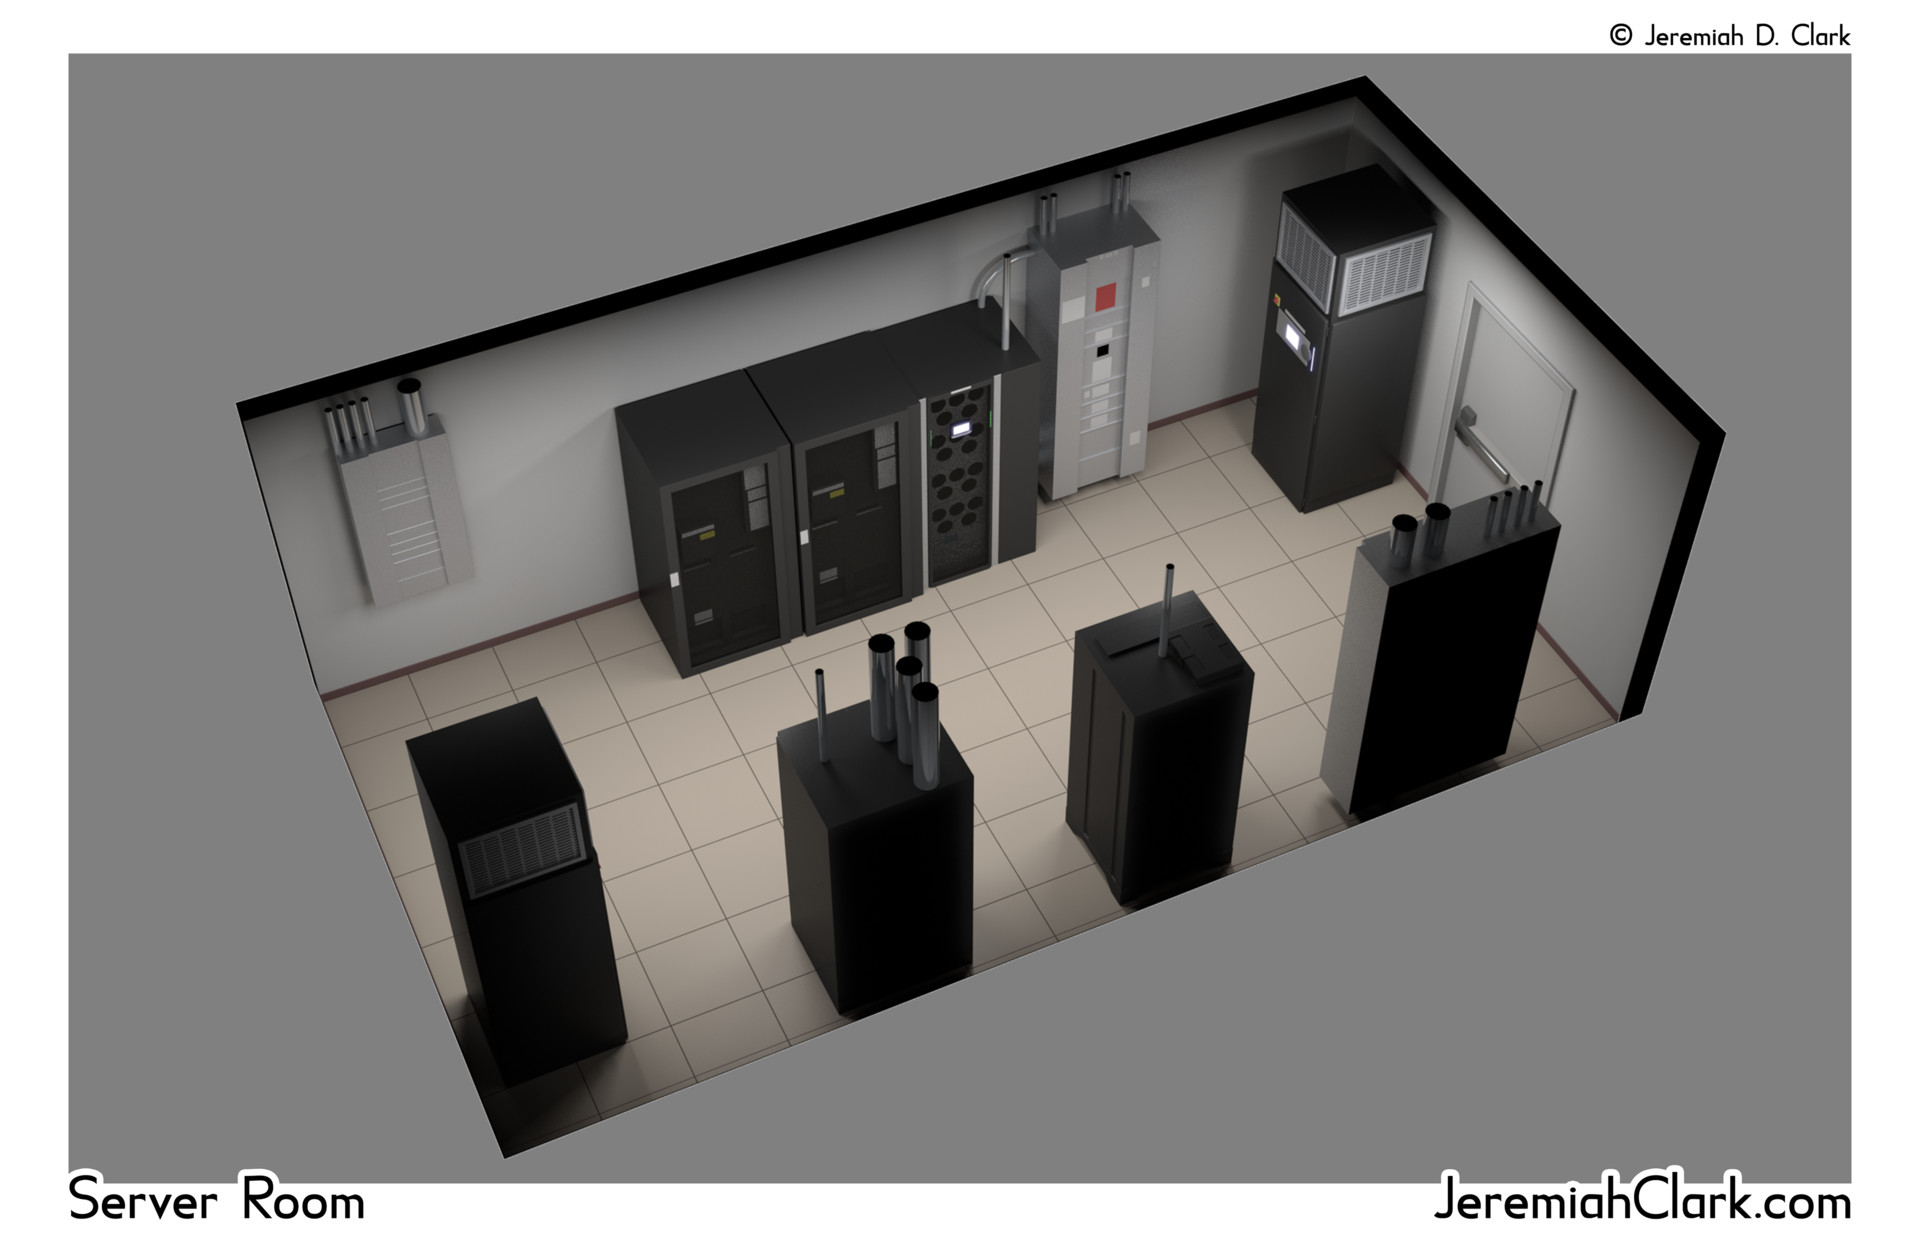 The final server room graphic.